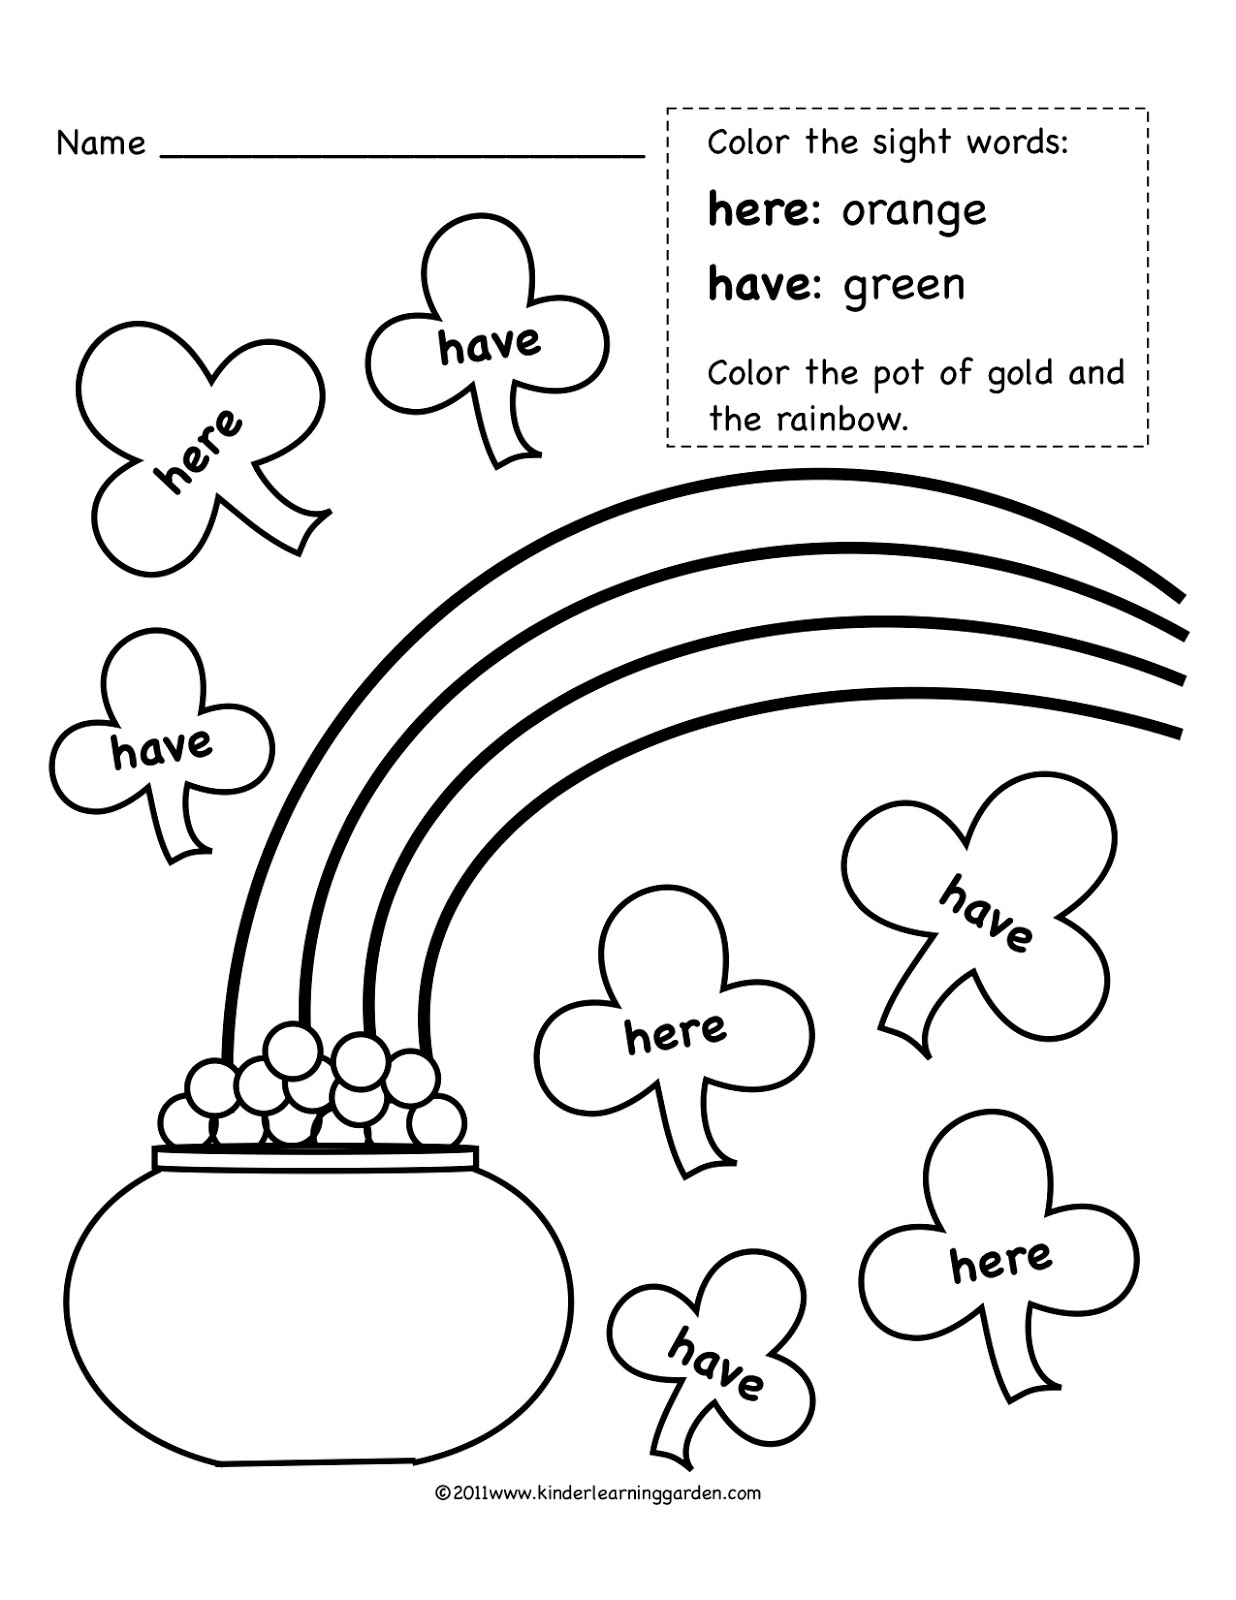 Kinder Learning Garden: March Sight Words Freebie